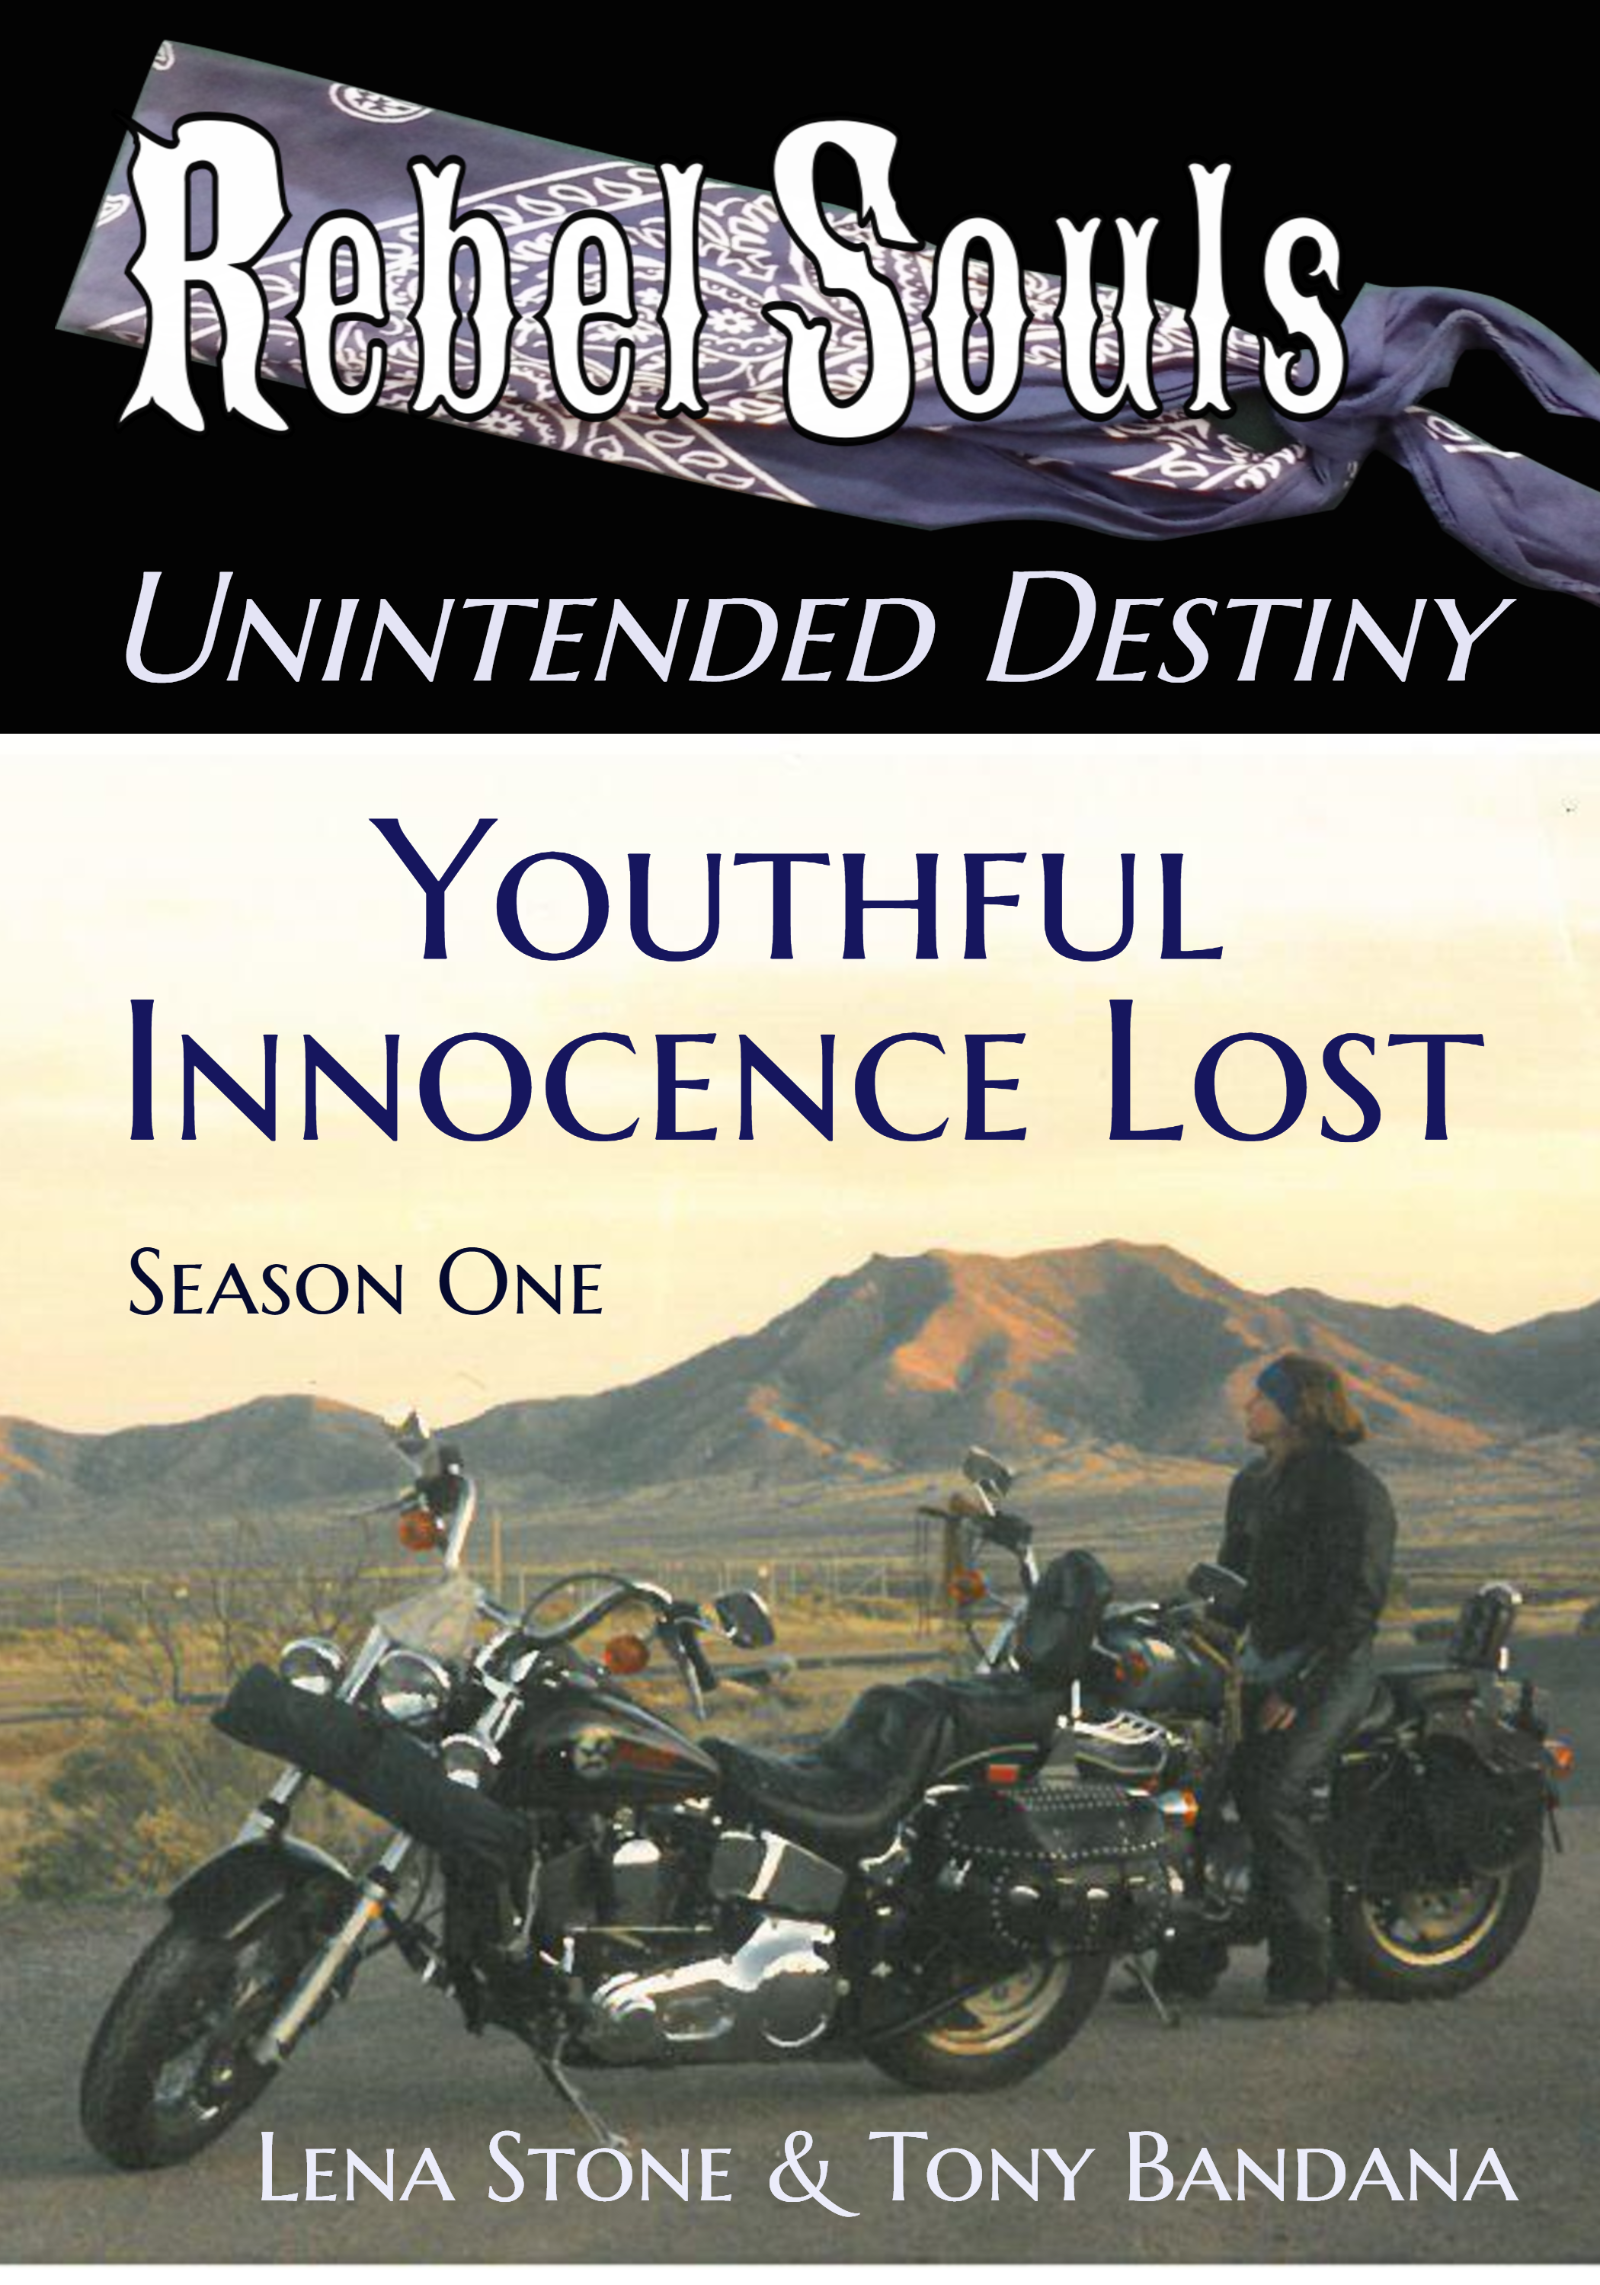 Season One Cover